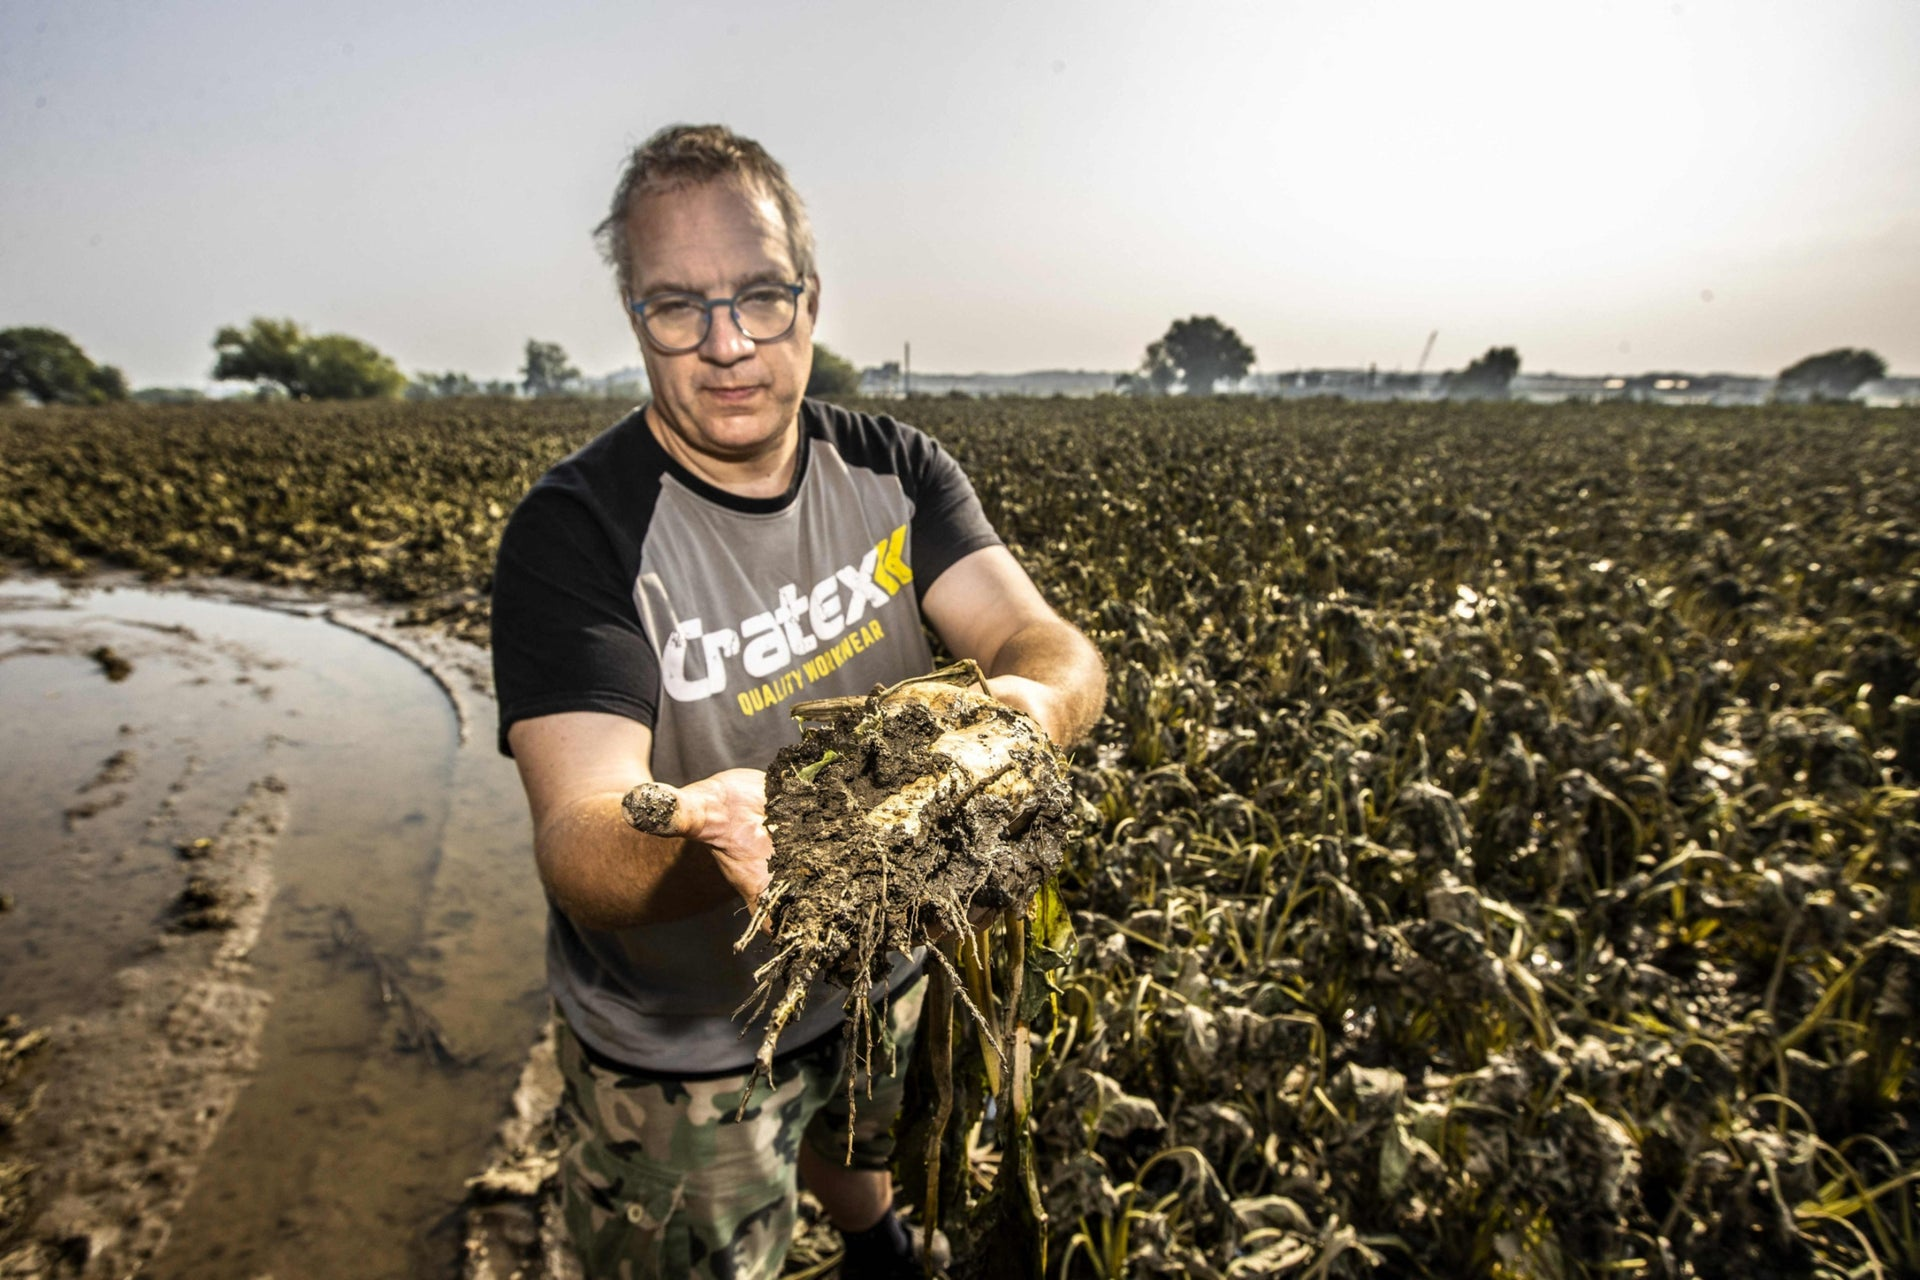 Meanwhile flooding in the Netherlands ruins a sugar beet crop